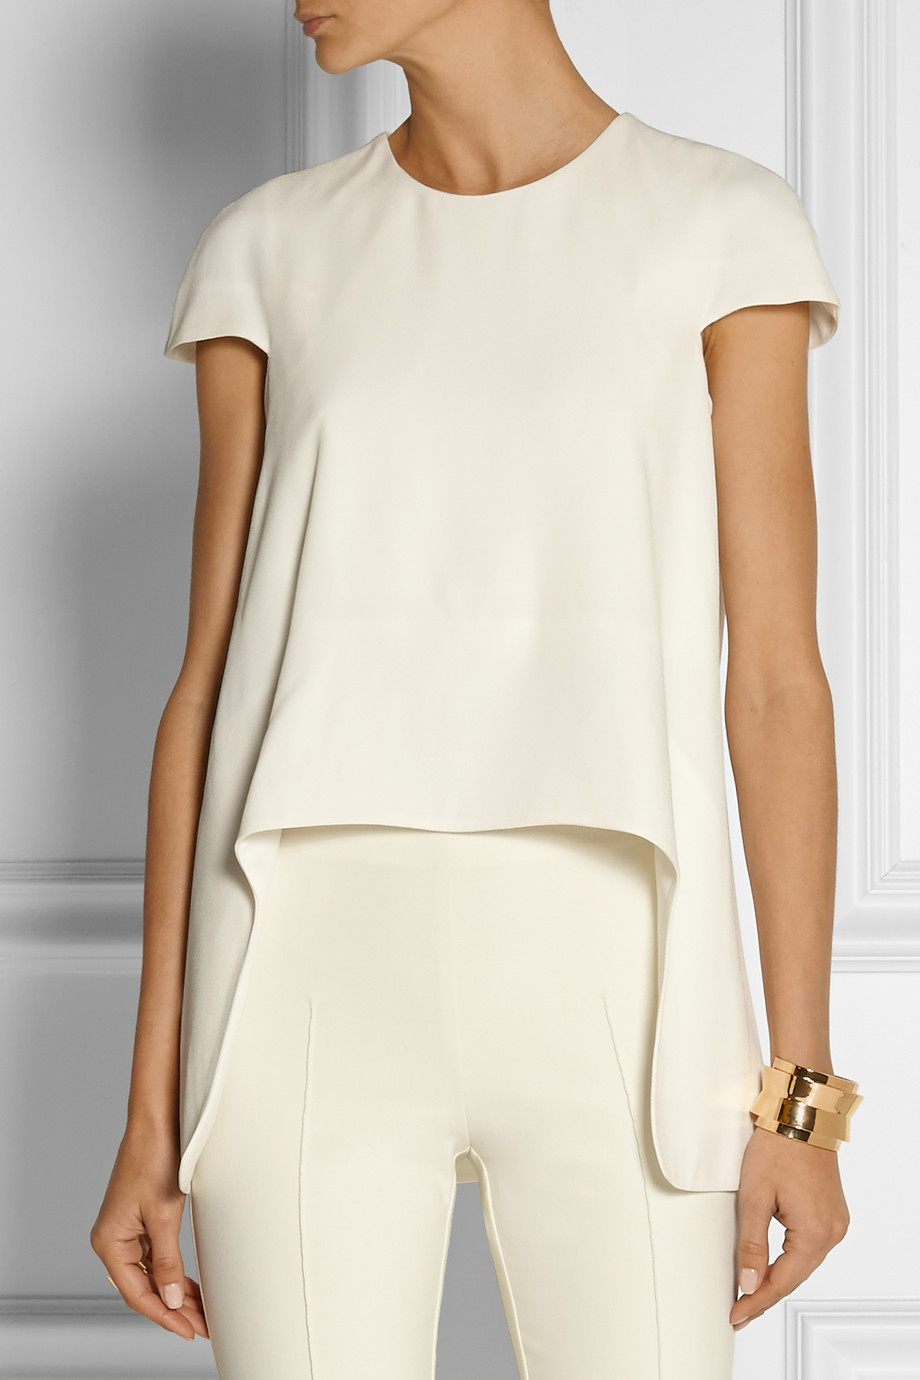 c70988018799a Lyst - Alexander McQueen Asymmetric Crepe Top in White